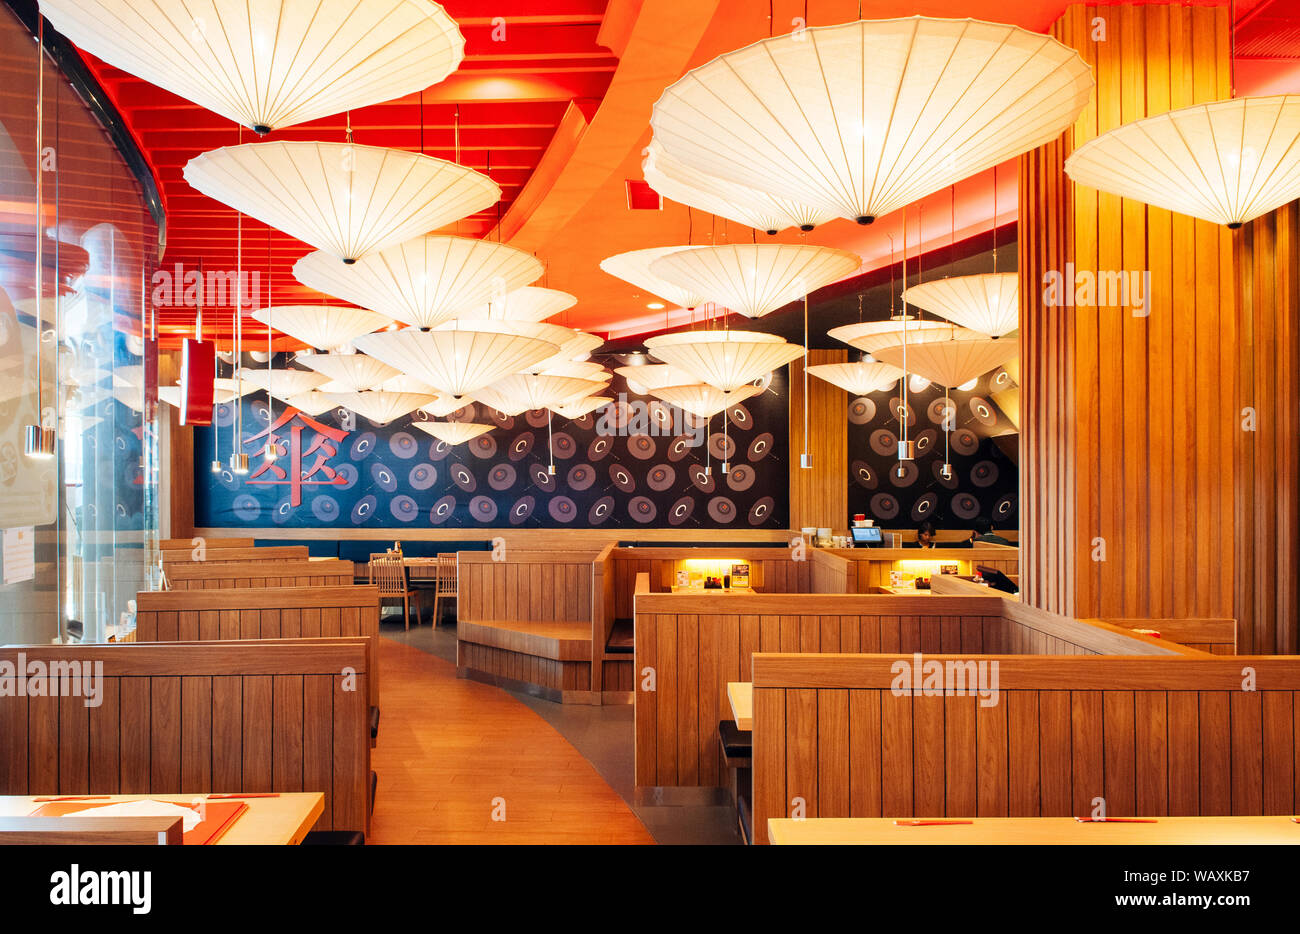 Oct 30 2013 Bangkok Thailand Vibrant Japanese Restaurant Interior Decorated Ceiling With Paper Umbrellas Warm Tone Lighting And Wooden Furniture Stock Photo Alamy